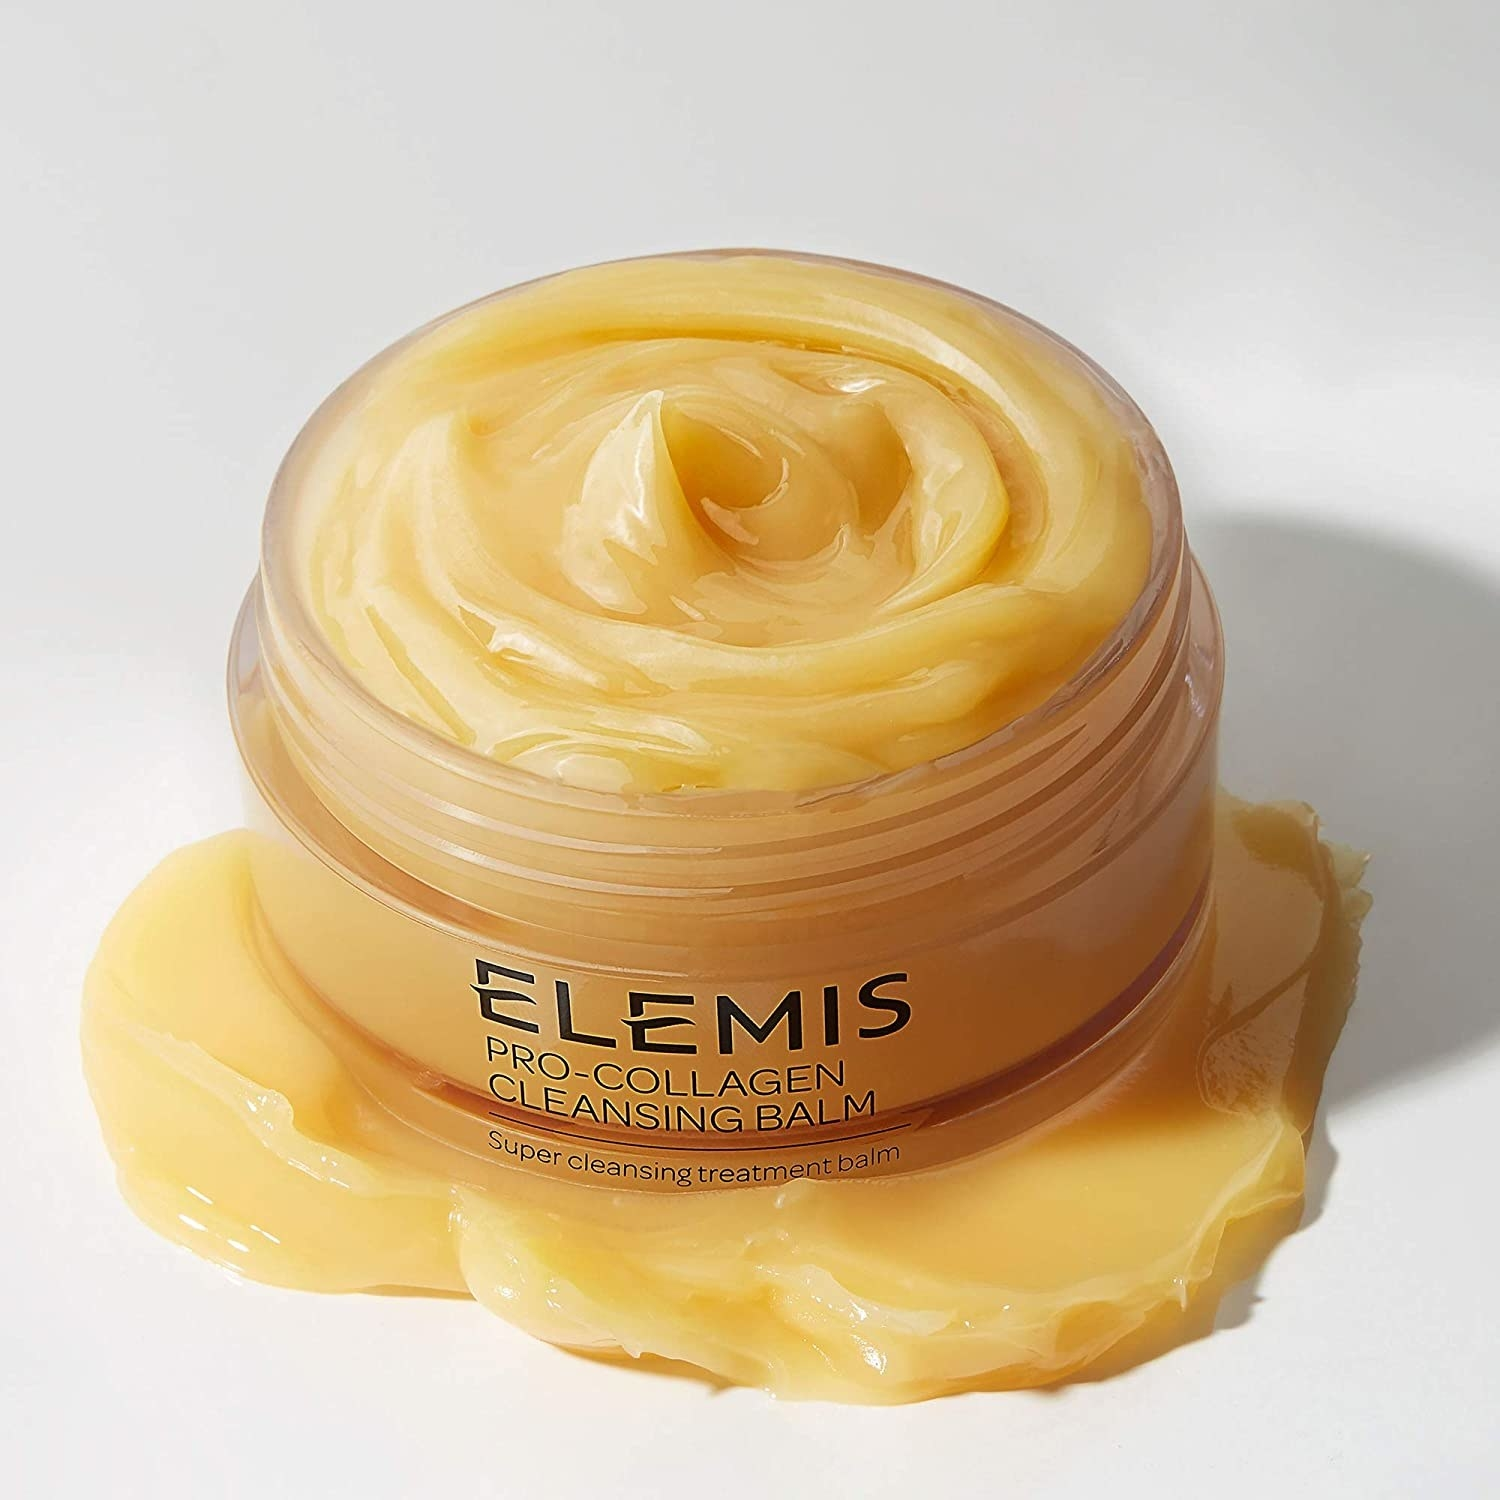 the jar of cleansing balm